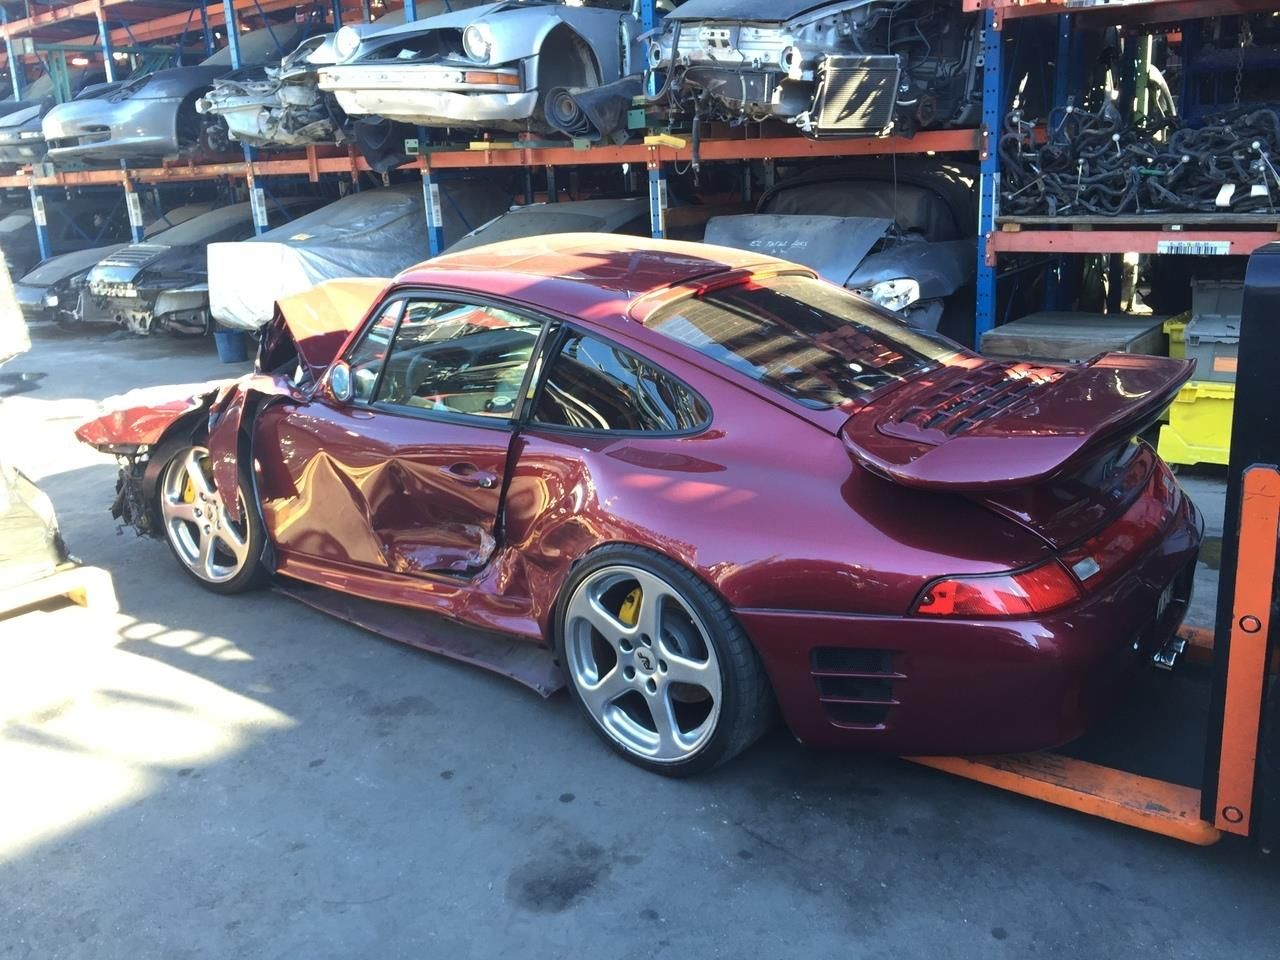 RUF-993-Turbo-R-crash-001.jpg